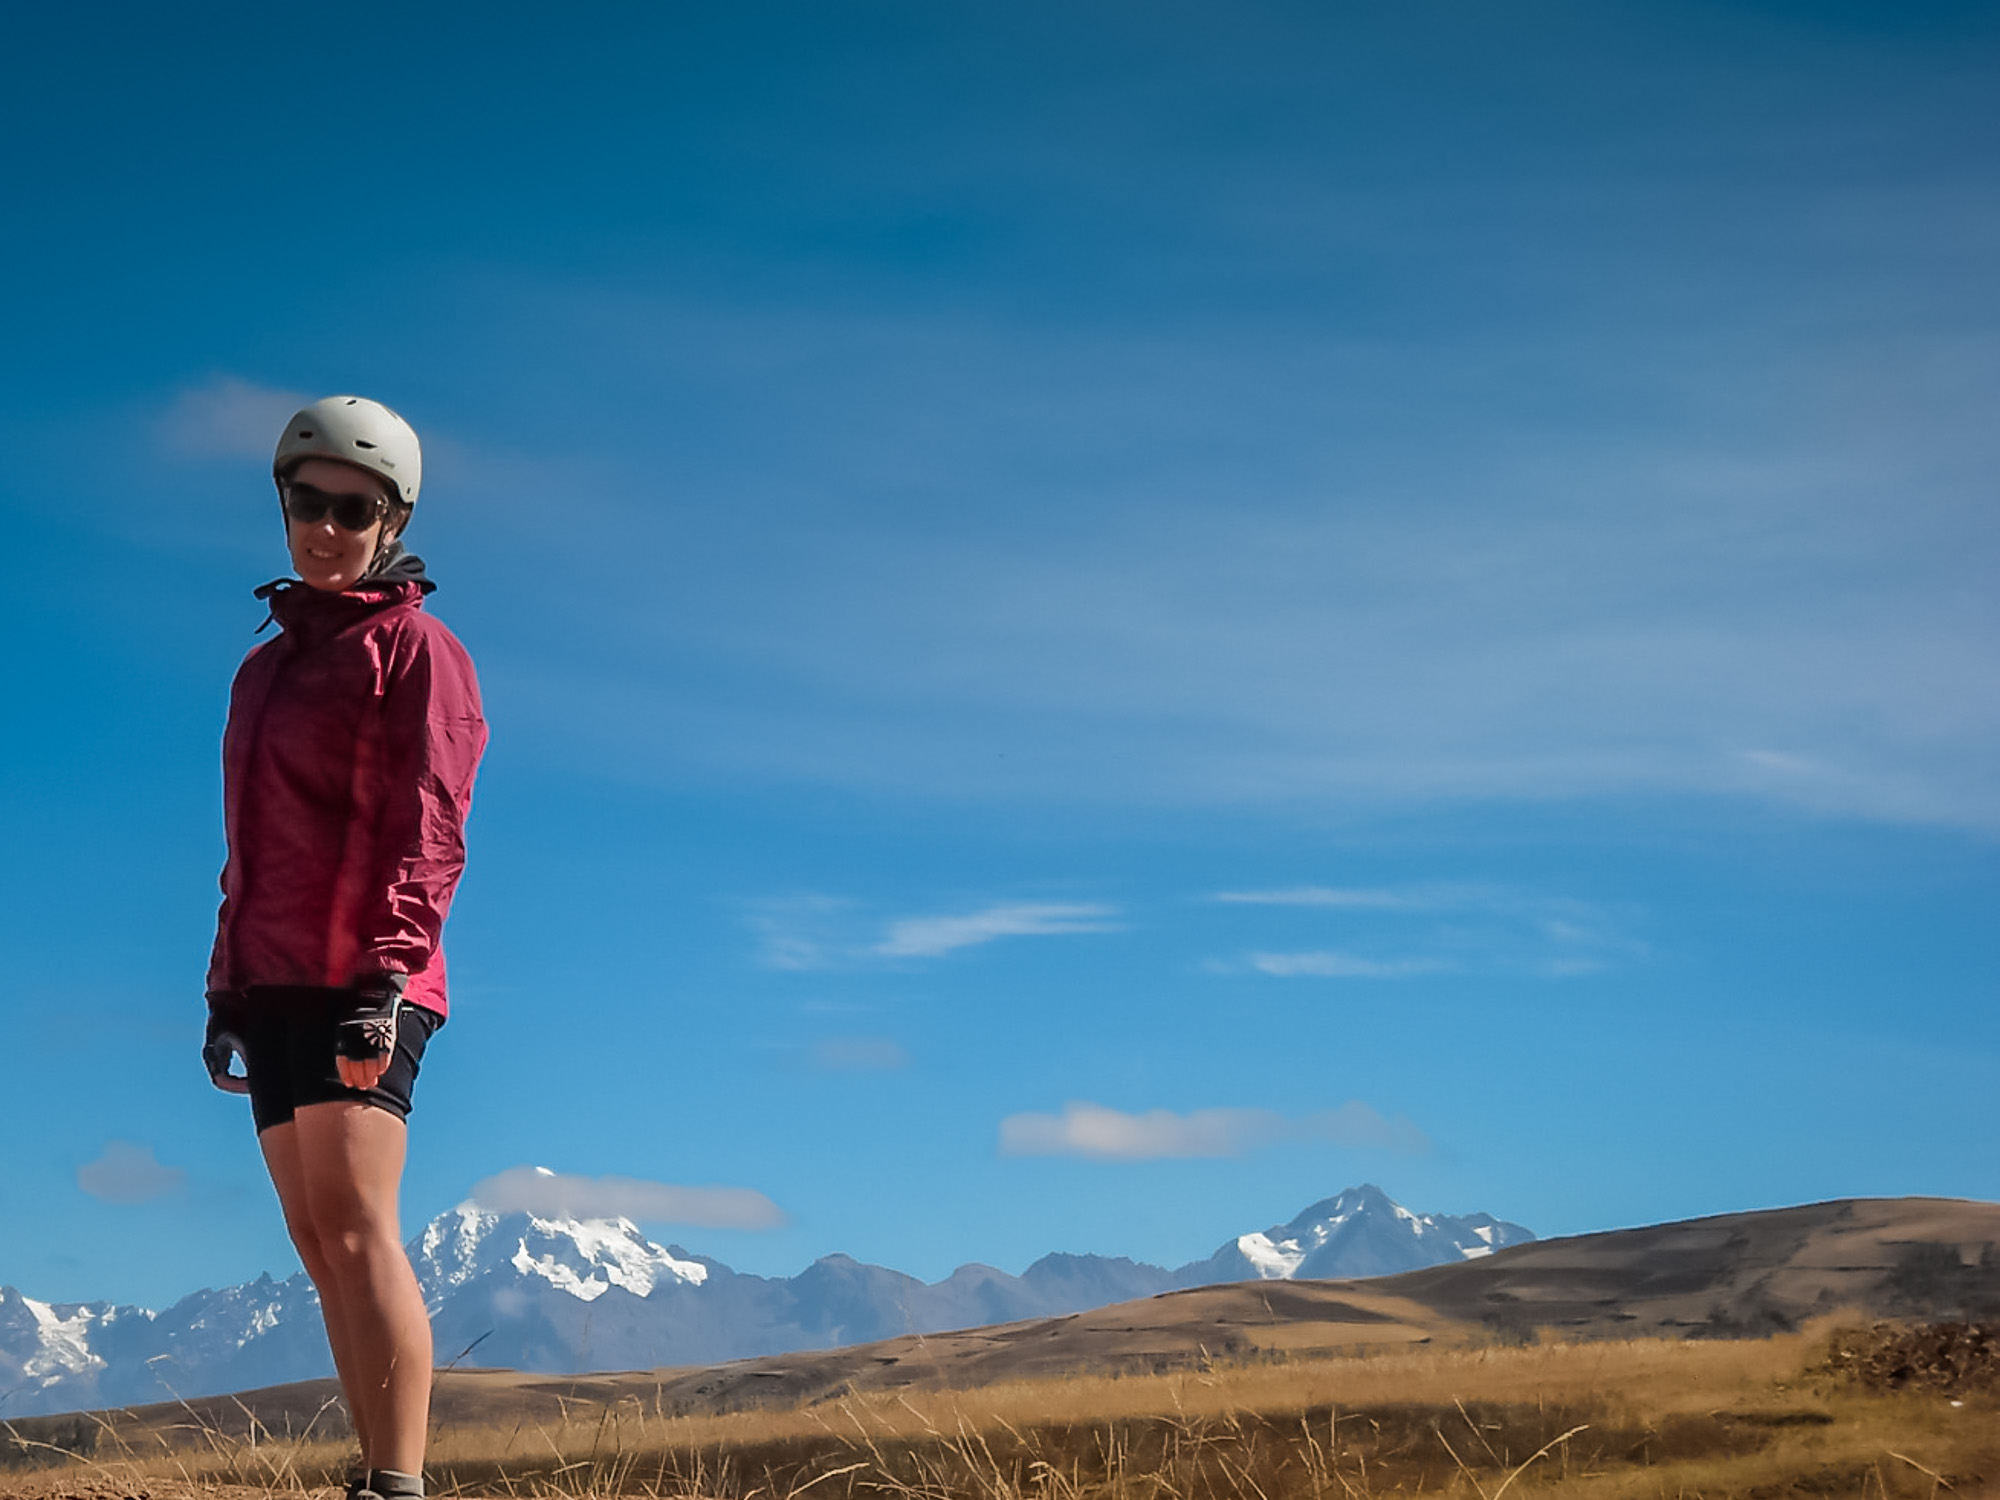 Peru guided tour guest in bike helmet in high mountain scenery